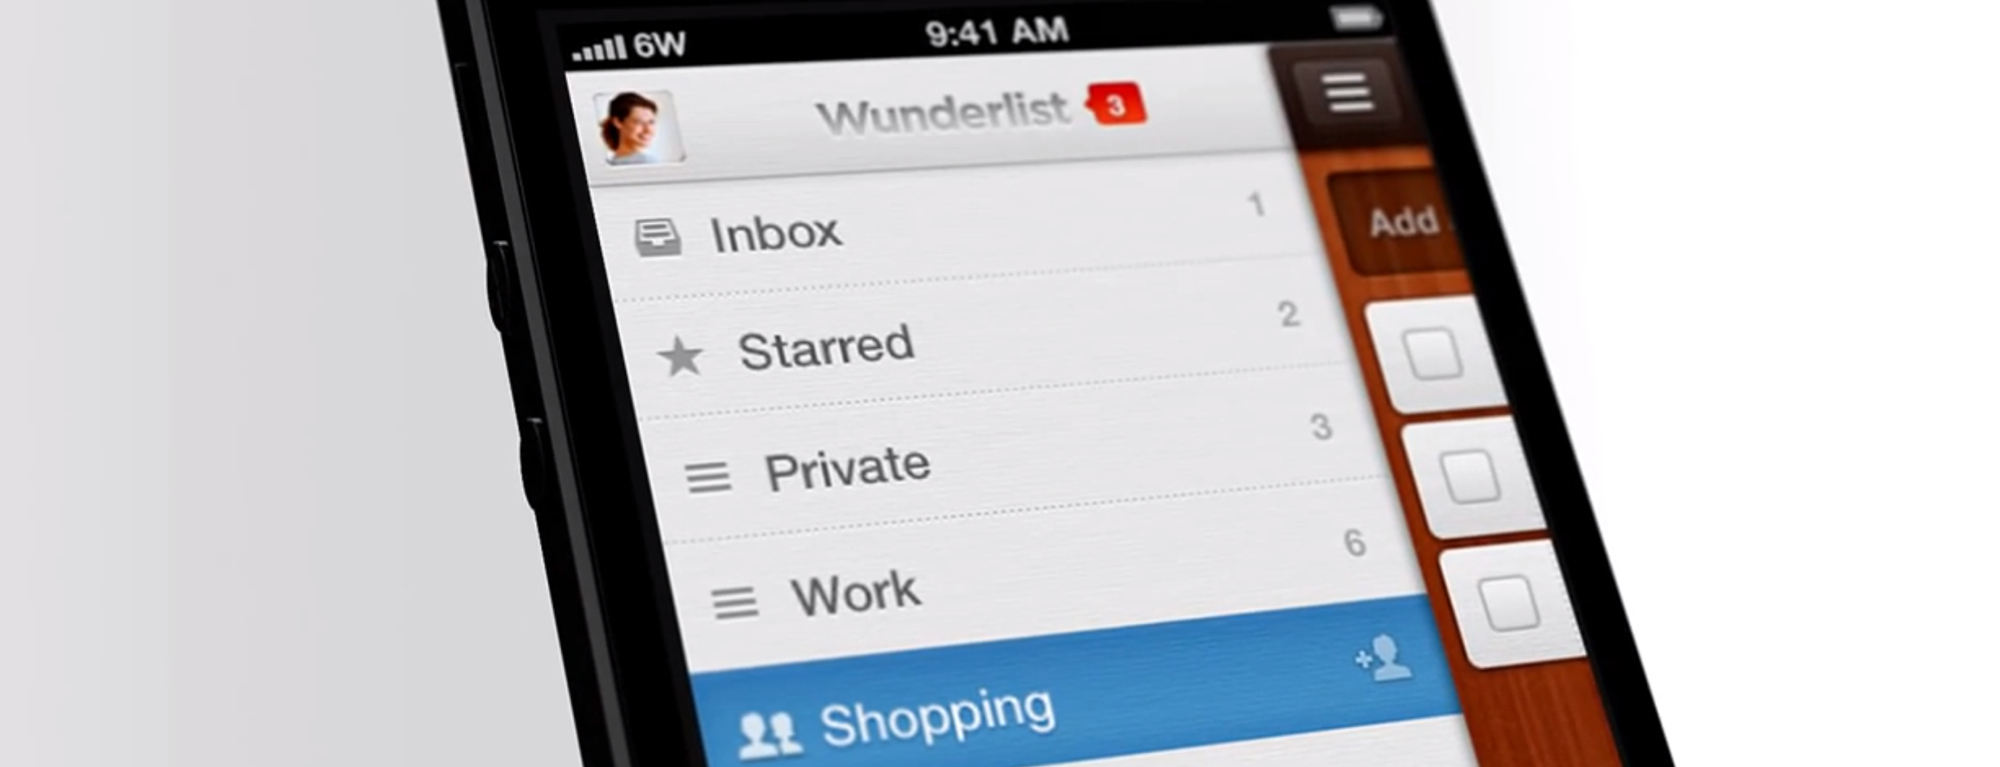 Wunderlist Adds Dropbox Support for Your To-do Lists